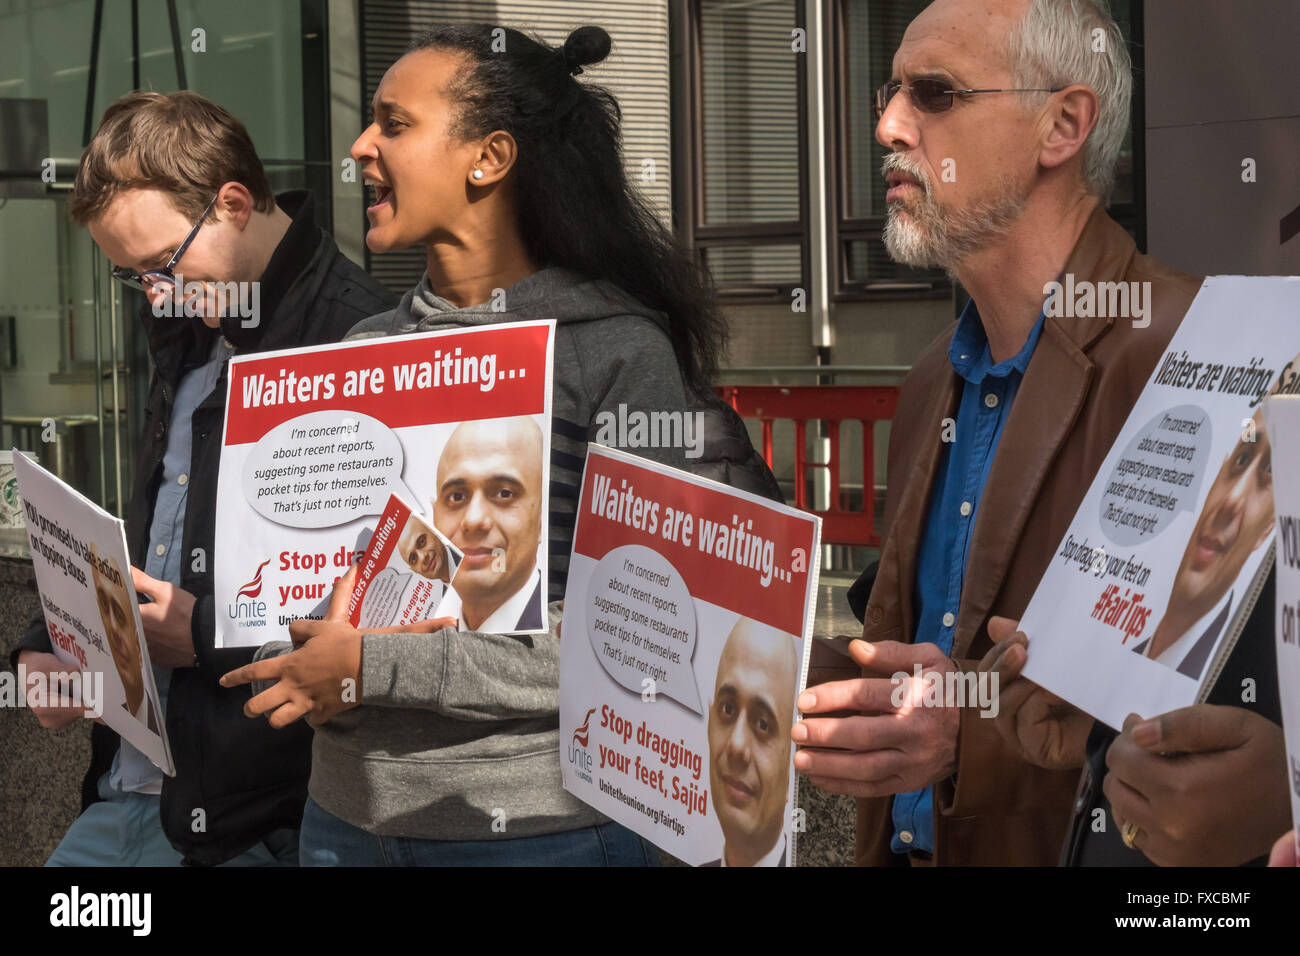 London, UK. 14th April, 2016. The Unite Hotel Workers Branch protest at the Dept of Business, Innovation & Skills - Stock Image